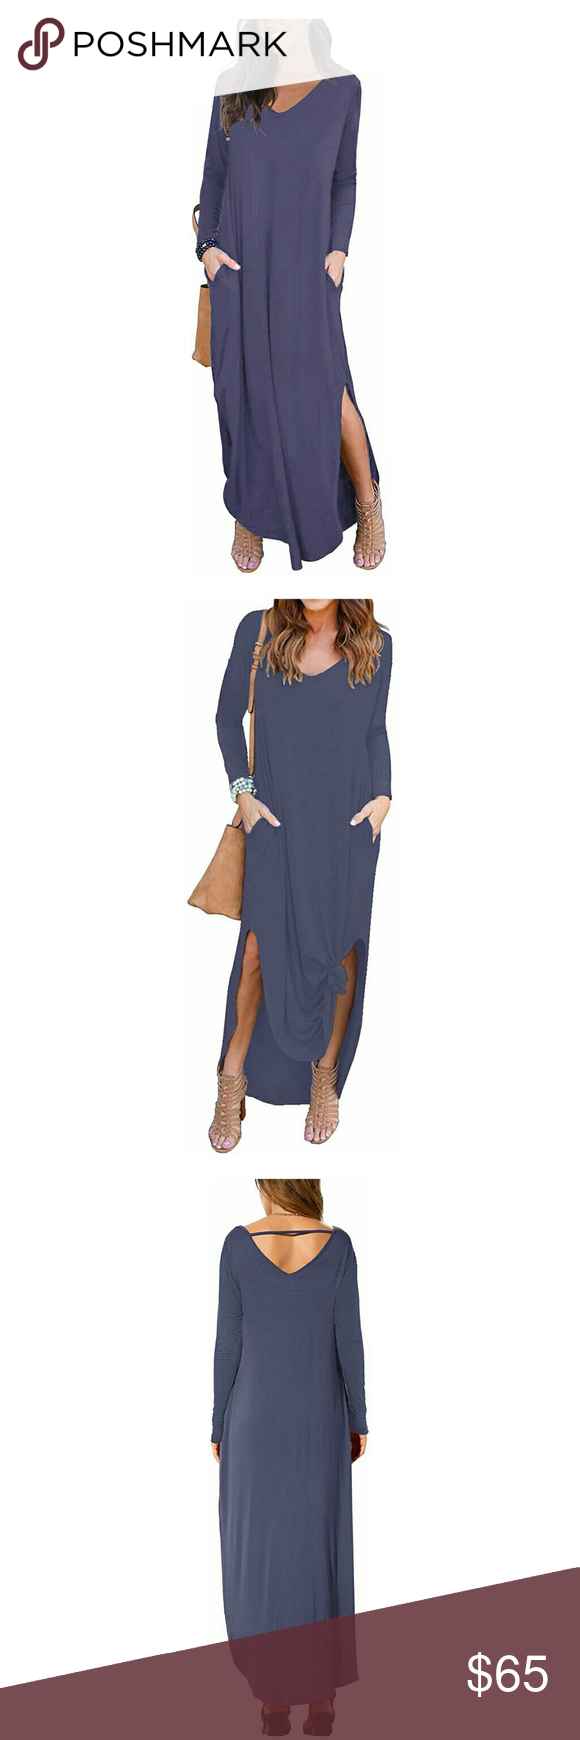 Nwt Purple Grey Long Sleeve V Neck Maxi Knot Dress Nwt Grey Purple Long Sleeve Maxi Dress With Pocket Grey Long Sleeve Long Sleeve Maxi Maxi Dress With Sleeves [ 1740 x 580 Pixel ]